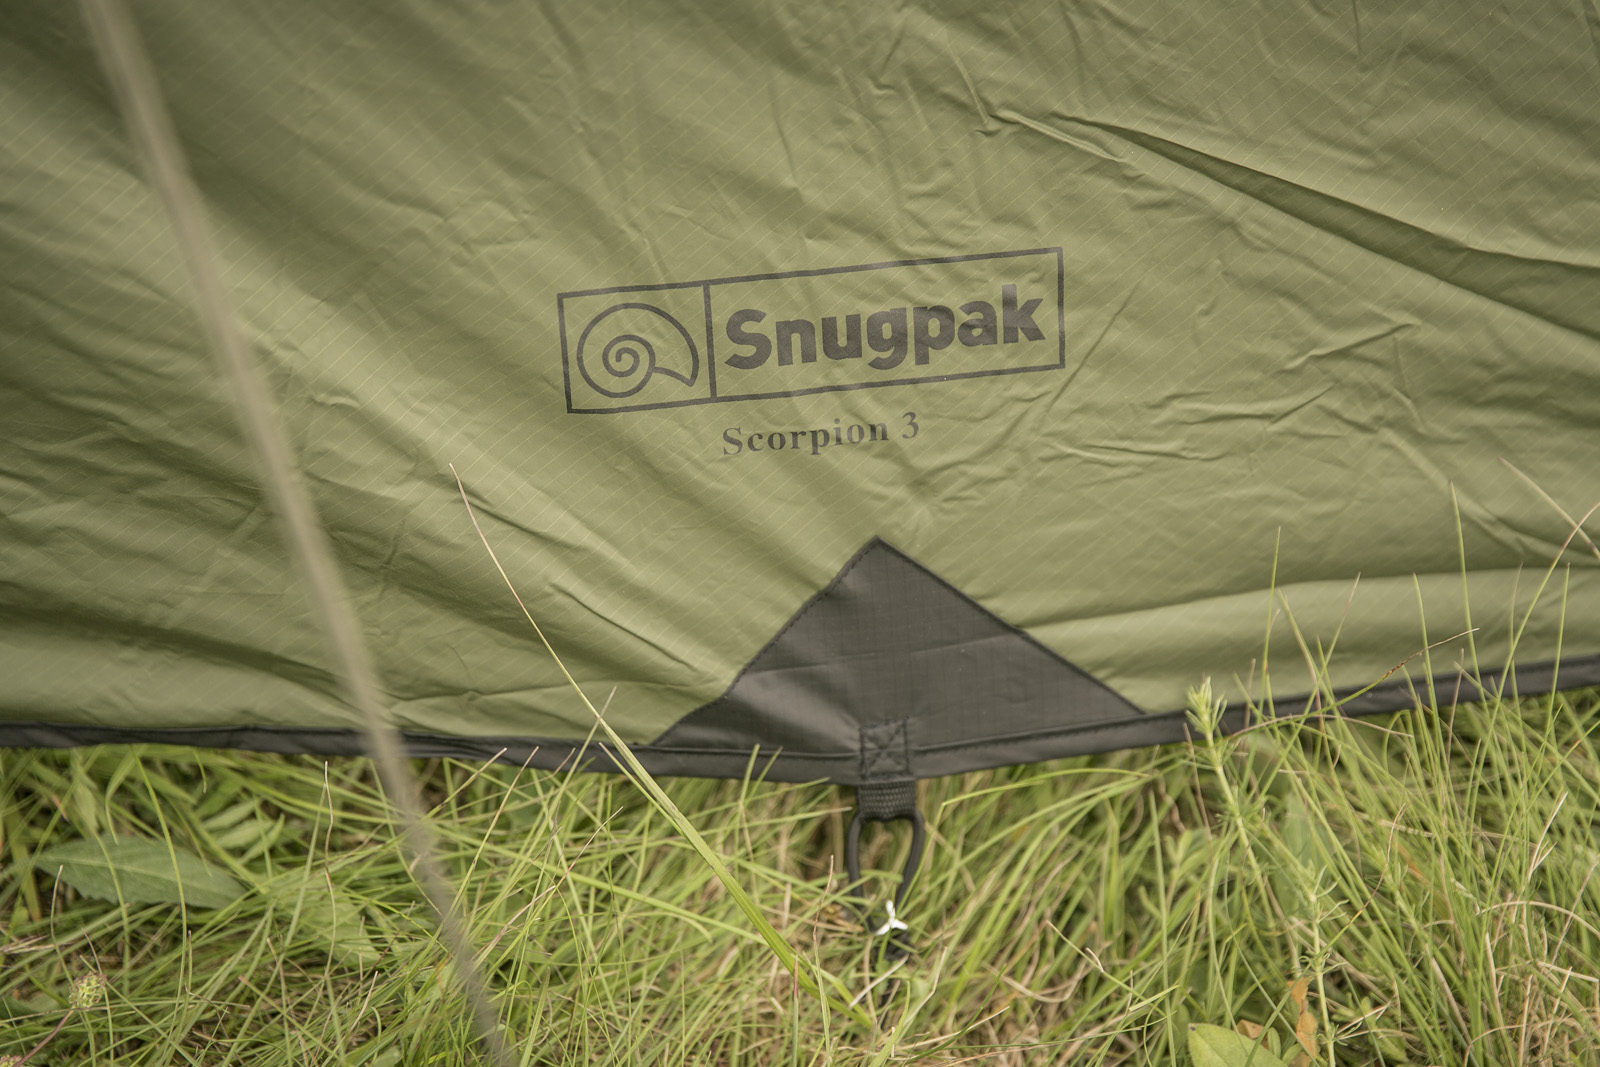 snugpak-scorpion-3-23